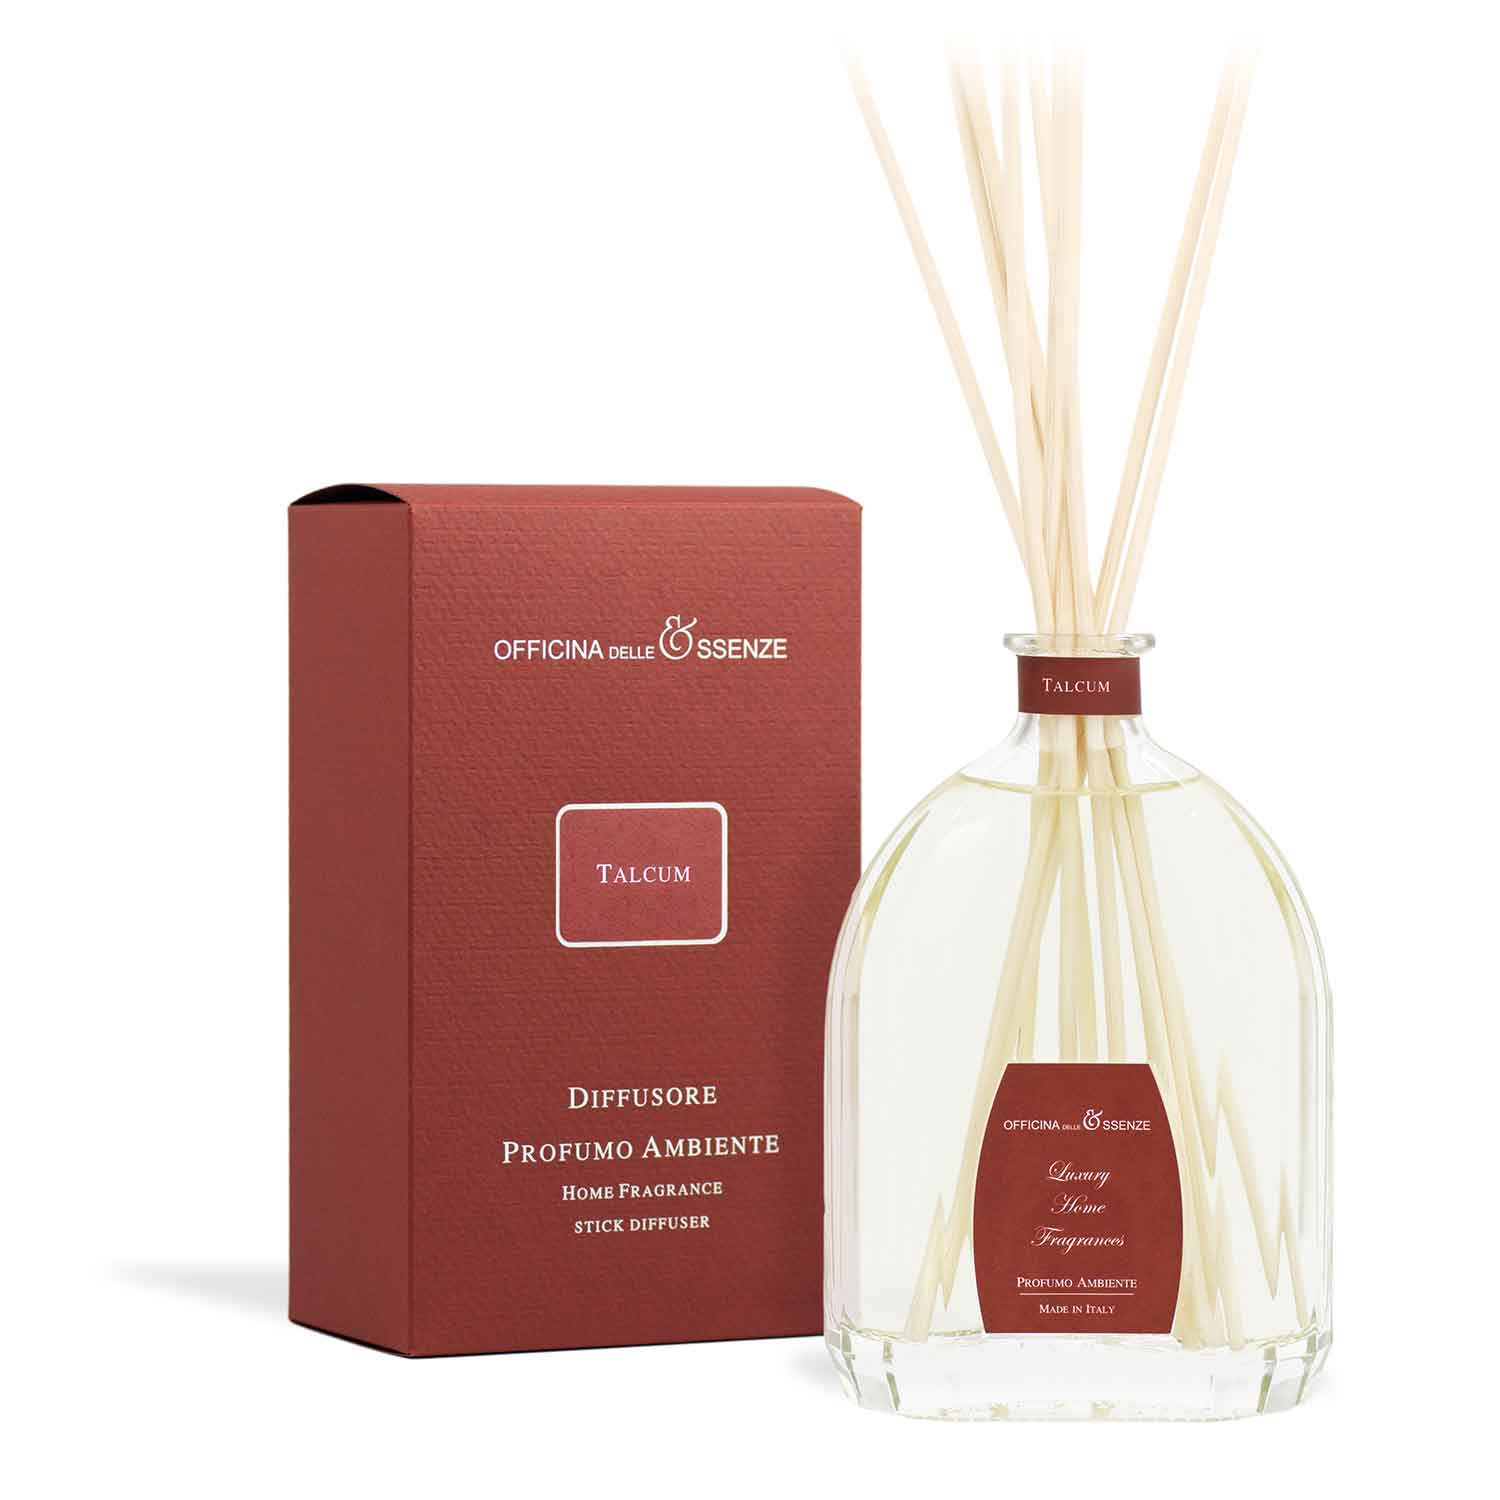 Talcum - Home reed diffuser